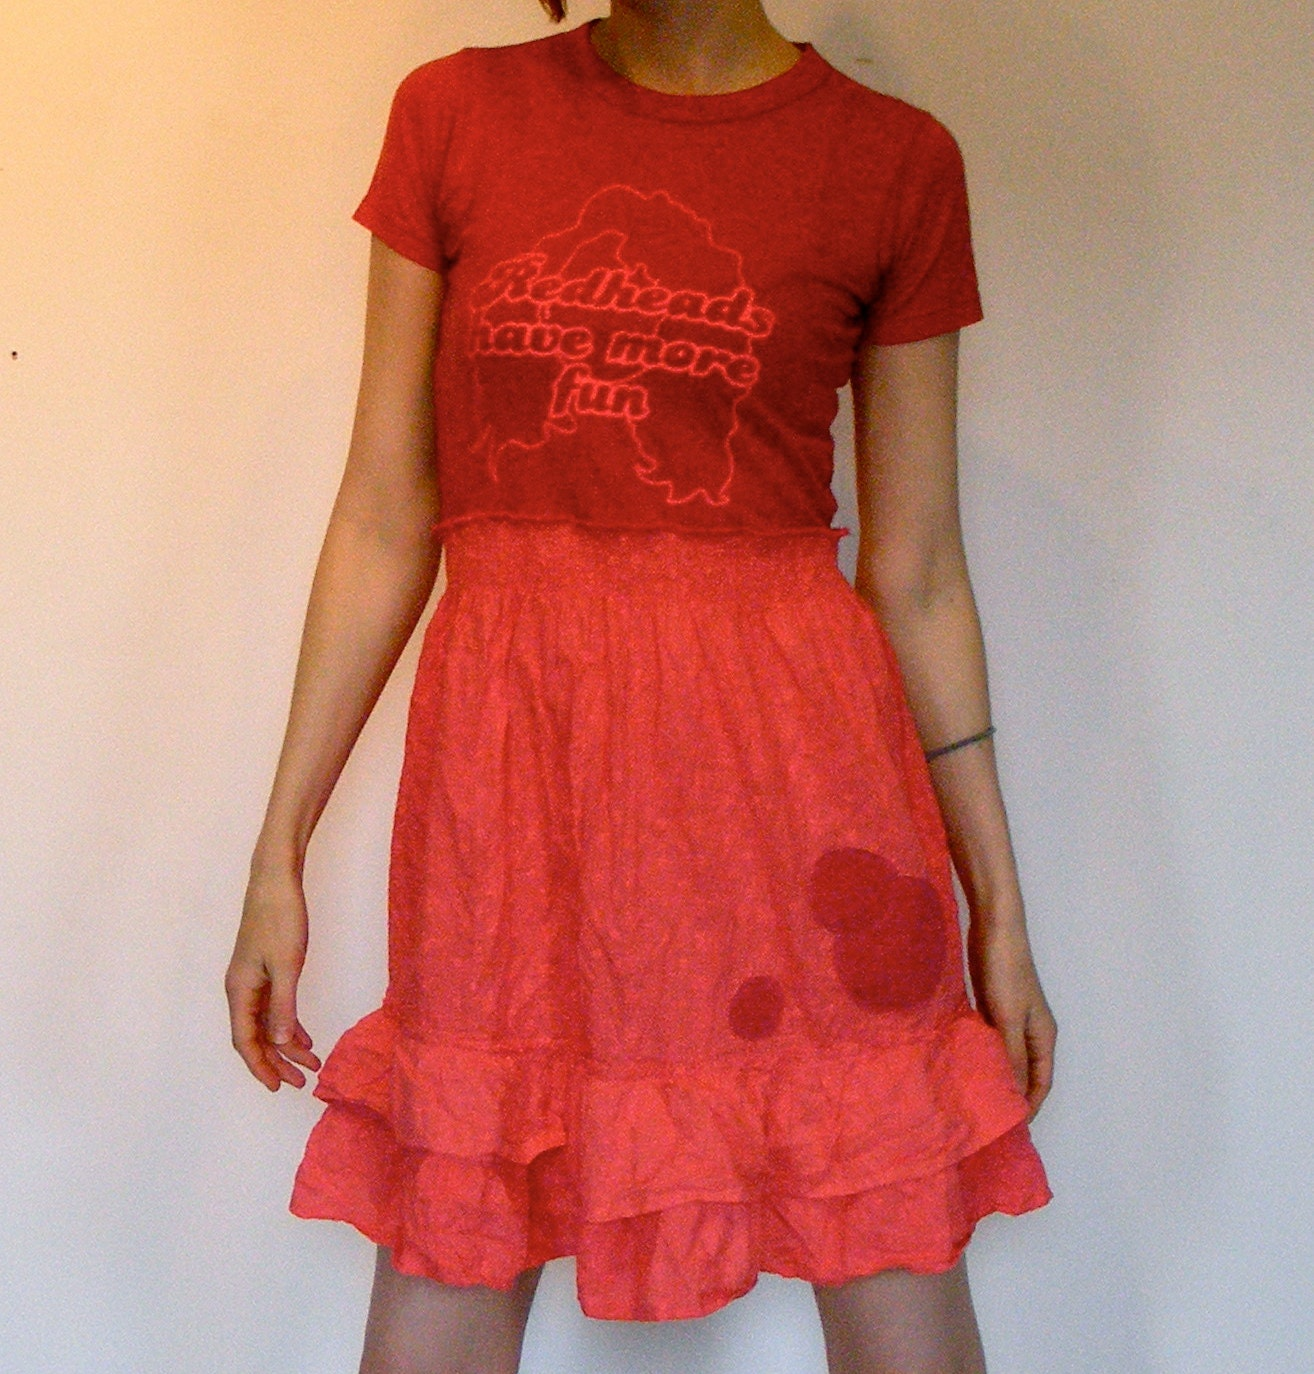 Women's Upcycled T-Shirt Dress for Summer Redheads, Eco and Recycled Pink Cottons - lovemadevisiblestore